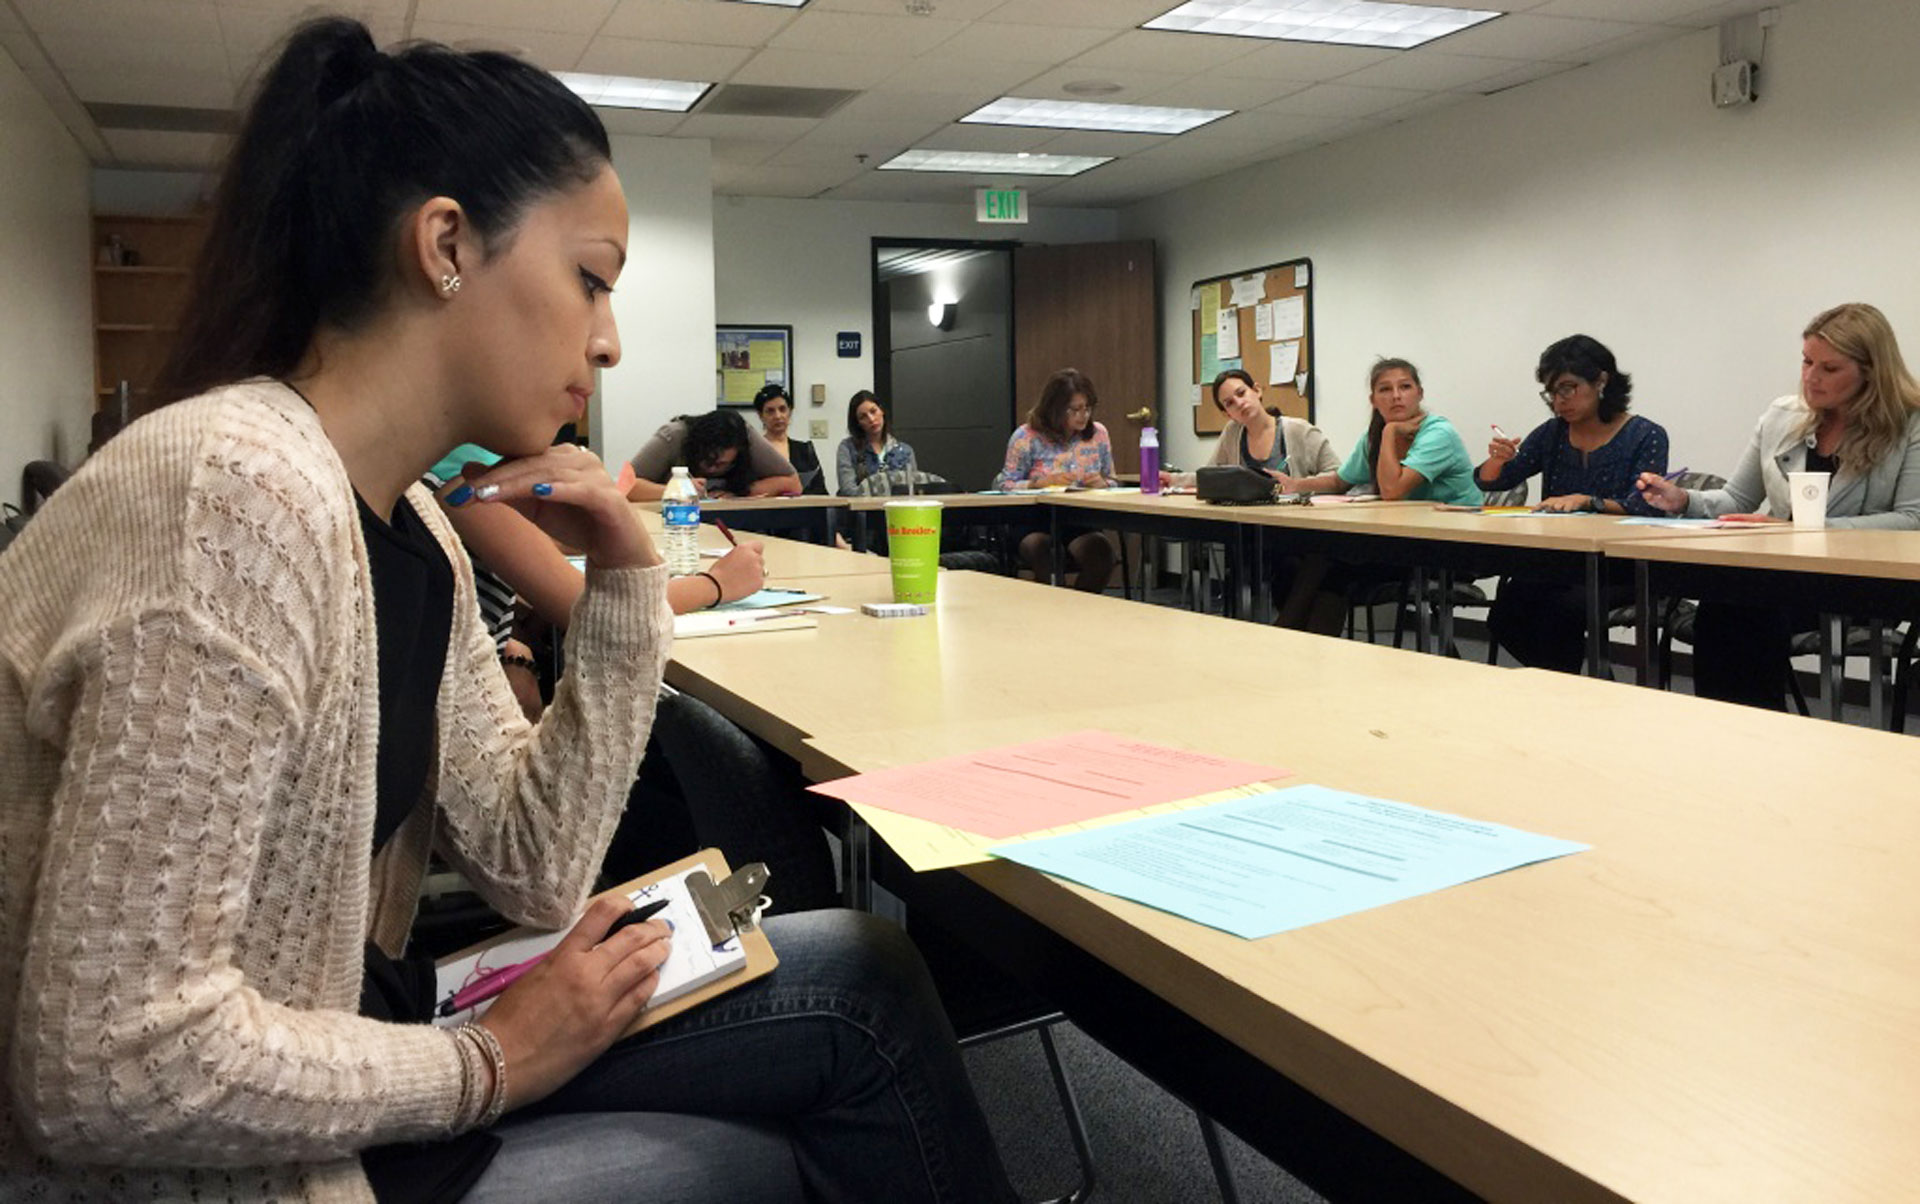 Women at Cal State Fullerton attend a recruiting event. The state is facing a shortage of teachers, due in part to declining enrollment in teacher preparation programs.